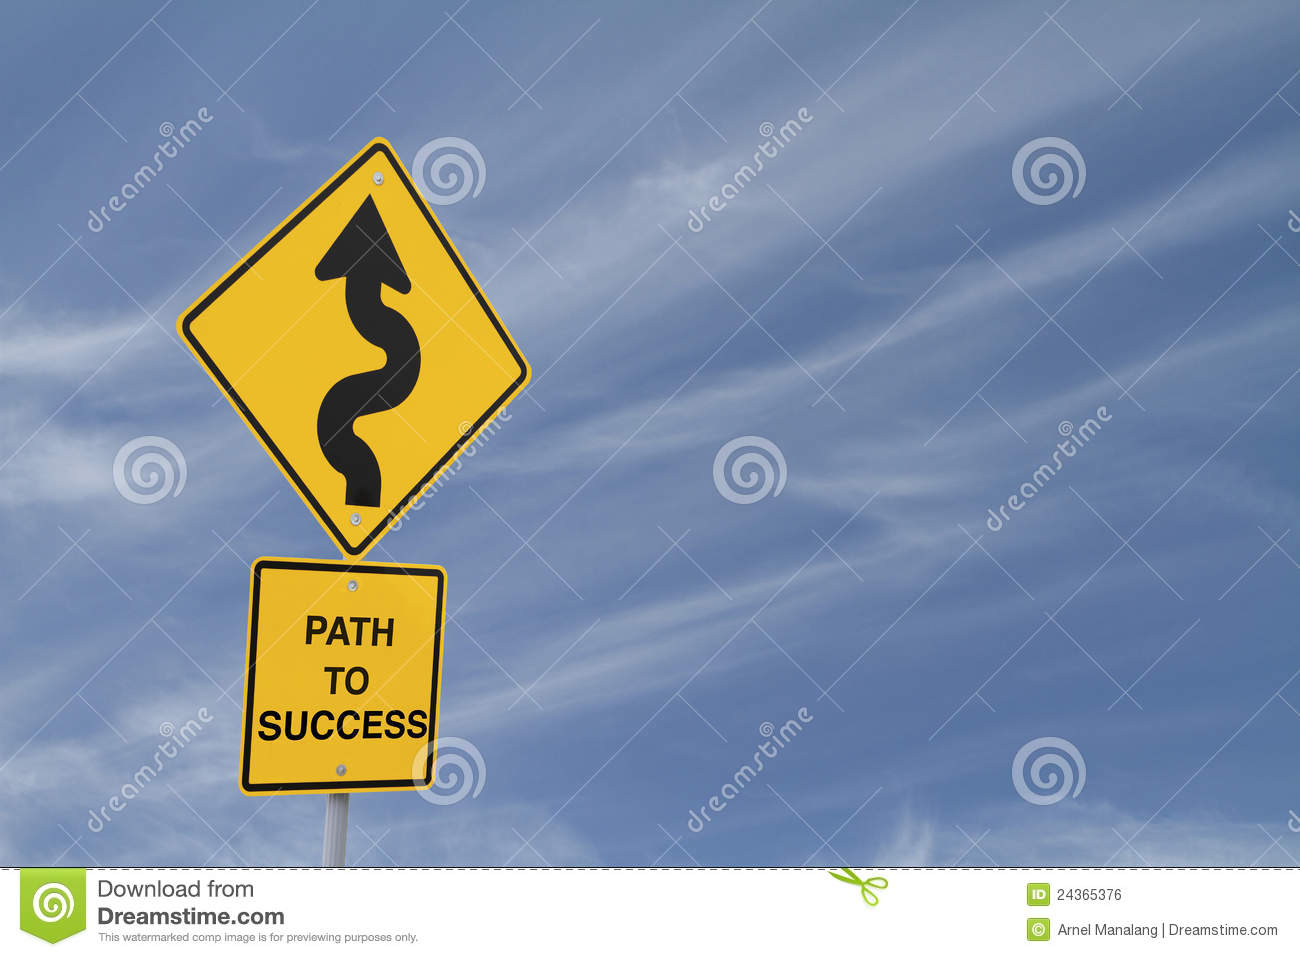 a path to success The path to success in anything meaningful is long and journey will be challenging but that's exactly why it's worth it embrace the journey.